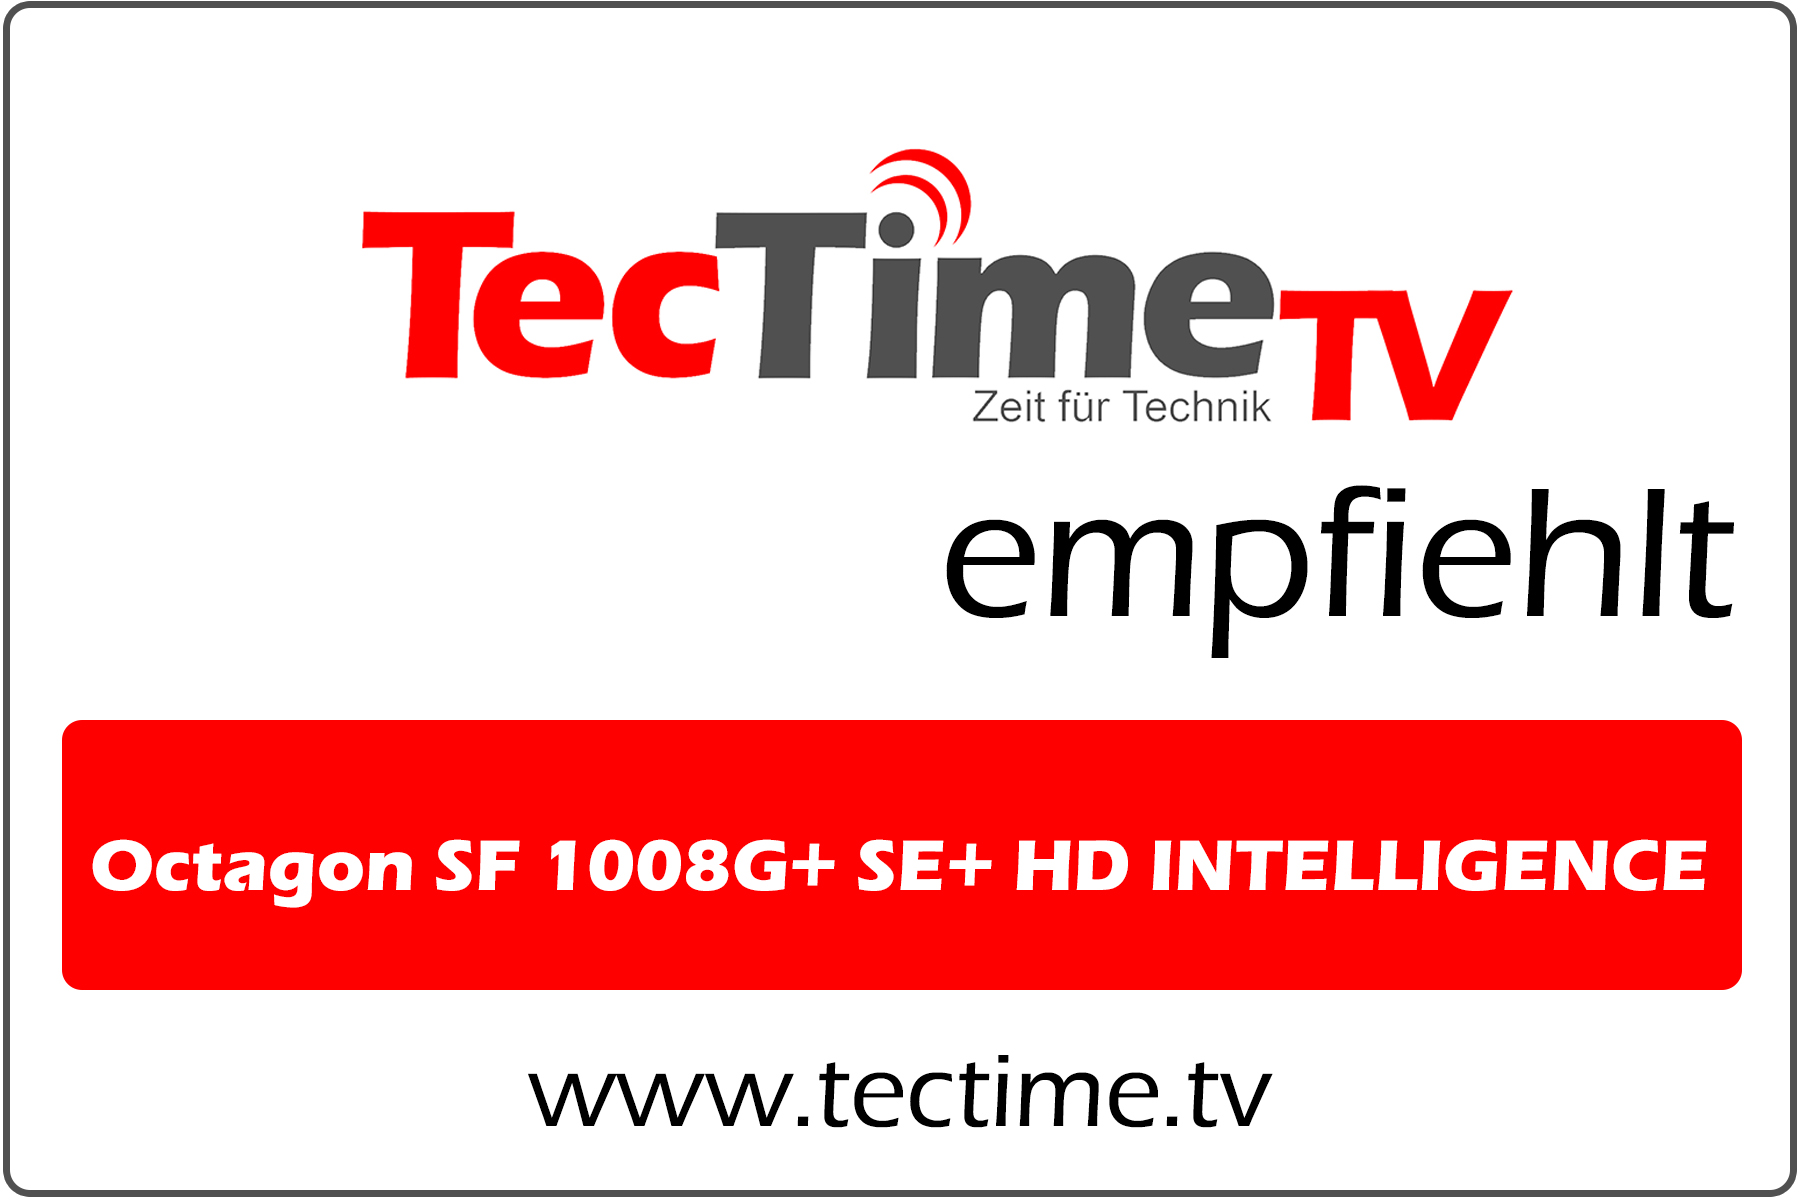 TecTime TV-Empfehlung_OctagonSF1008G+